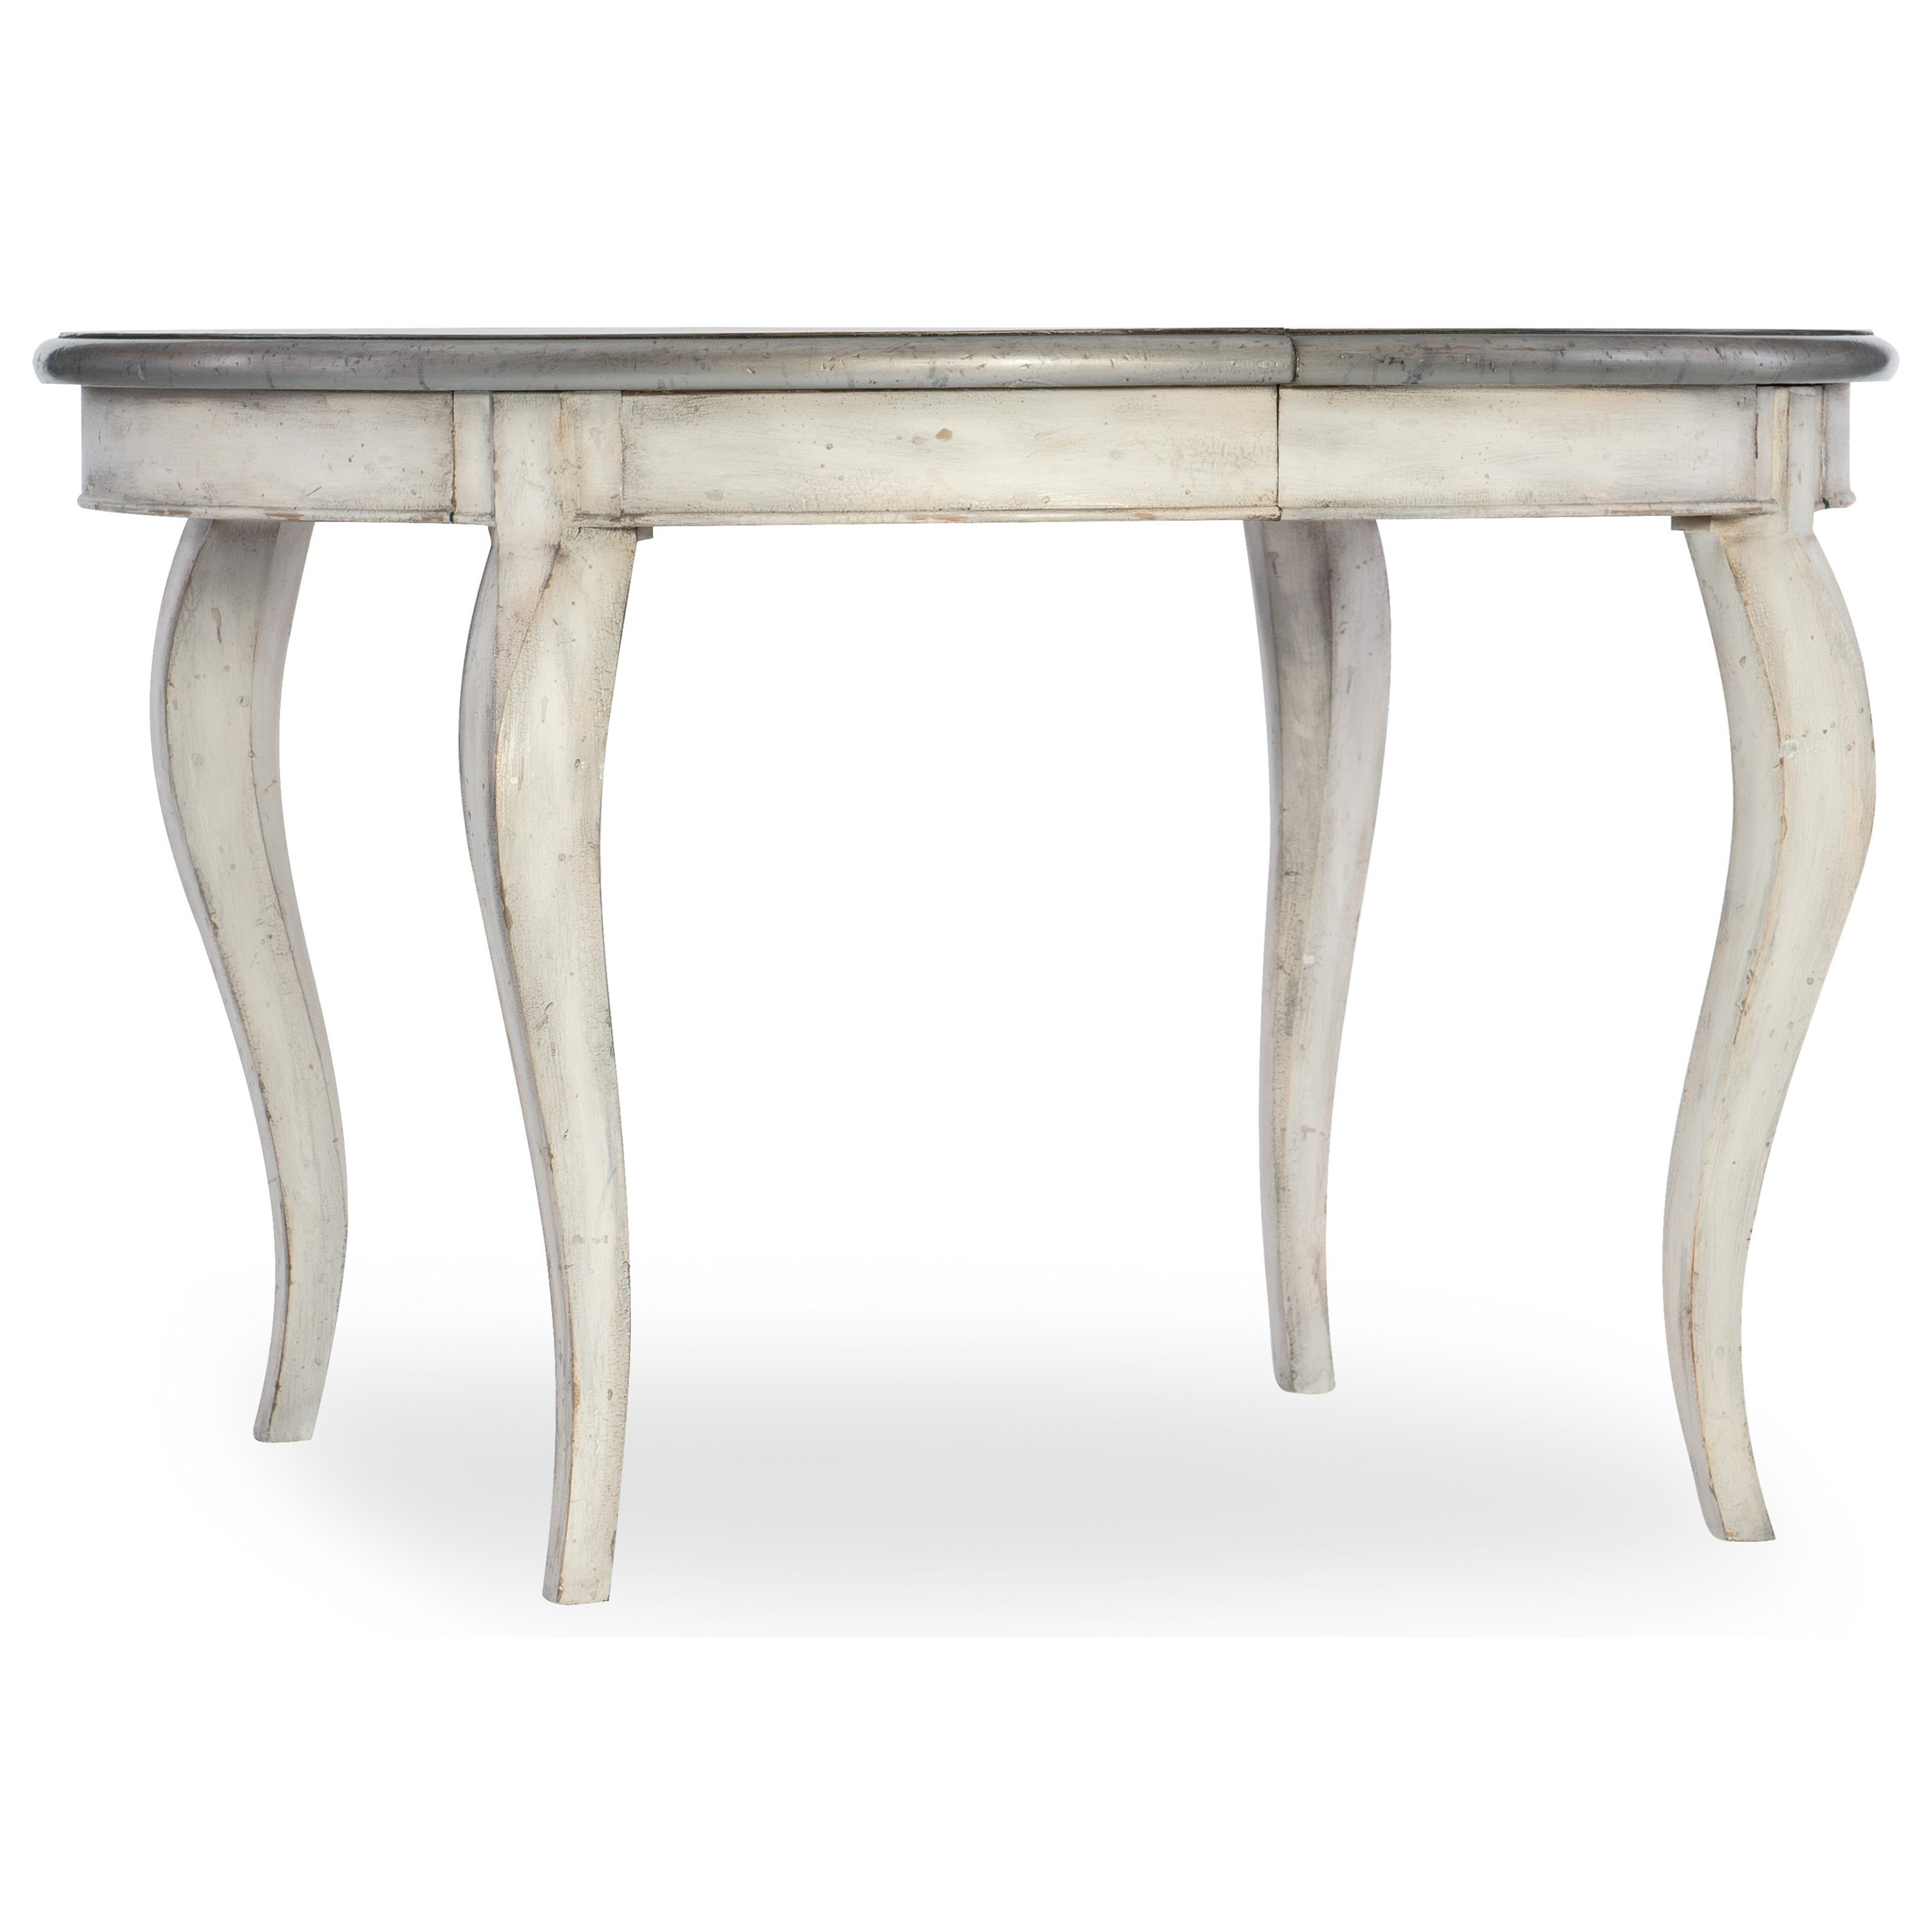 Arabella 48in Round Leg Table with 1-20in leaf by Hooker Furniture at Alison Craig Home Furnishings